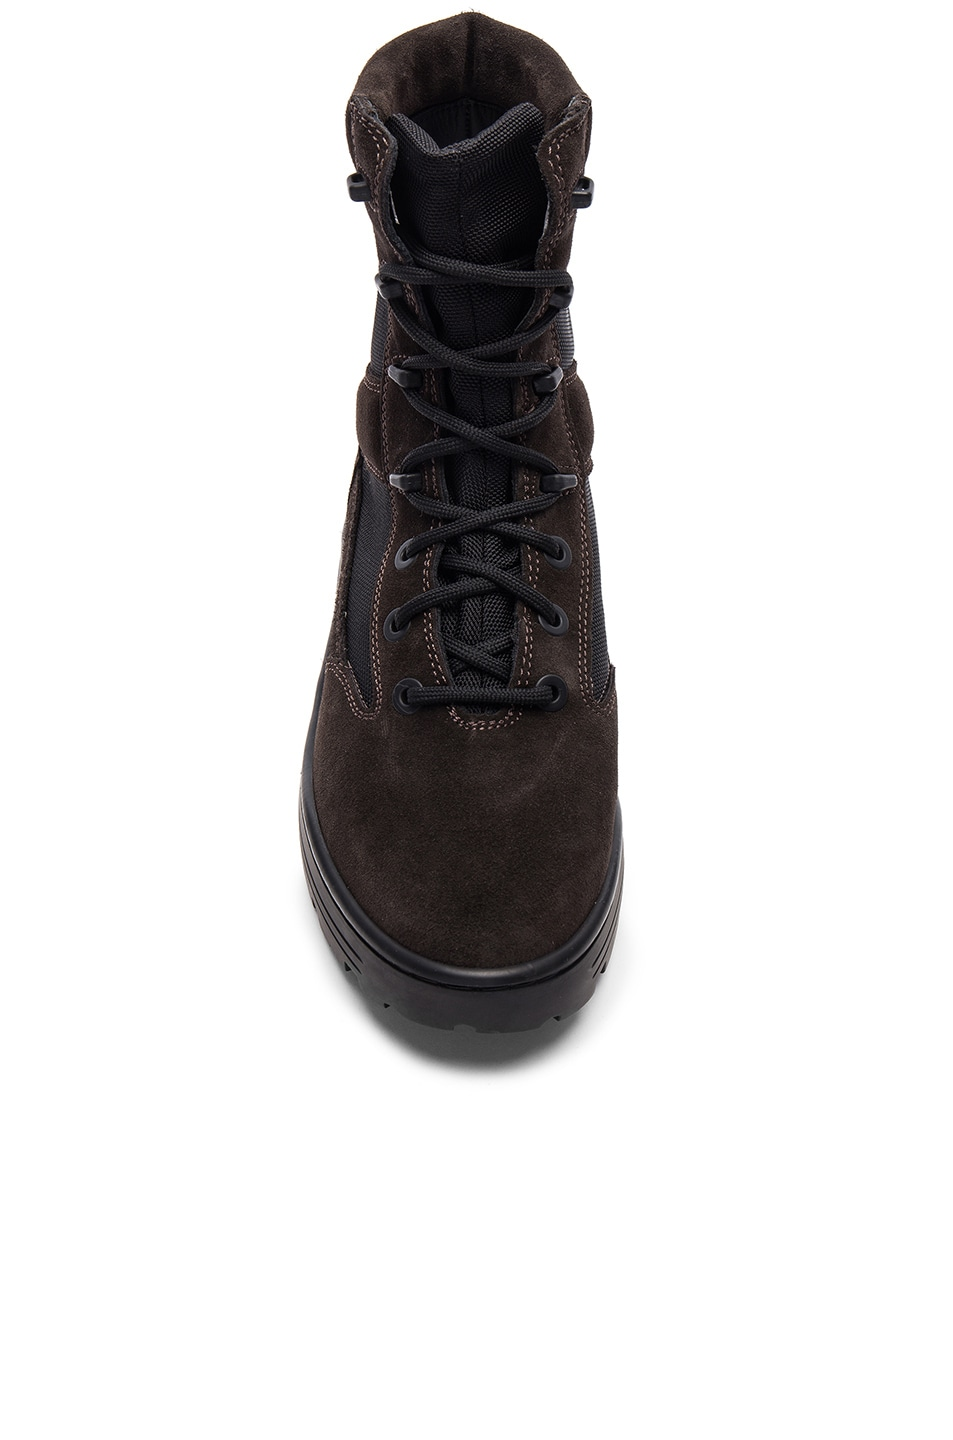 906ad21eee58a Image 4 of YEEZY Season 4 Suede Combat Boots in Oil